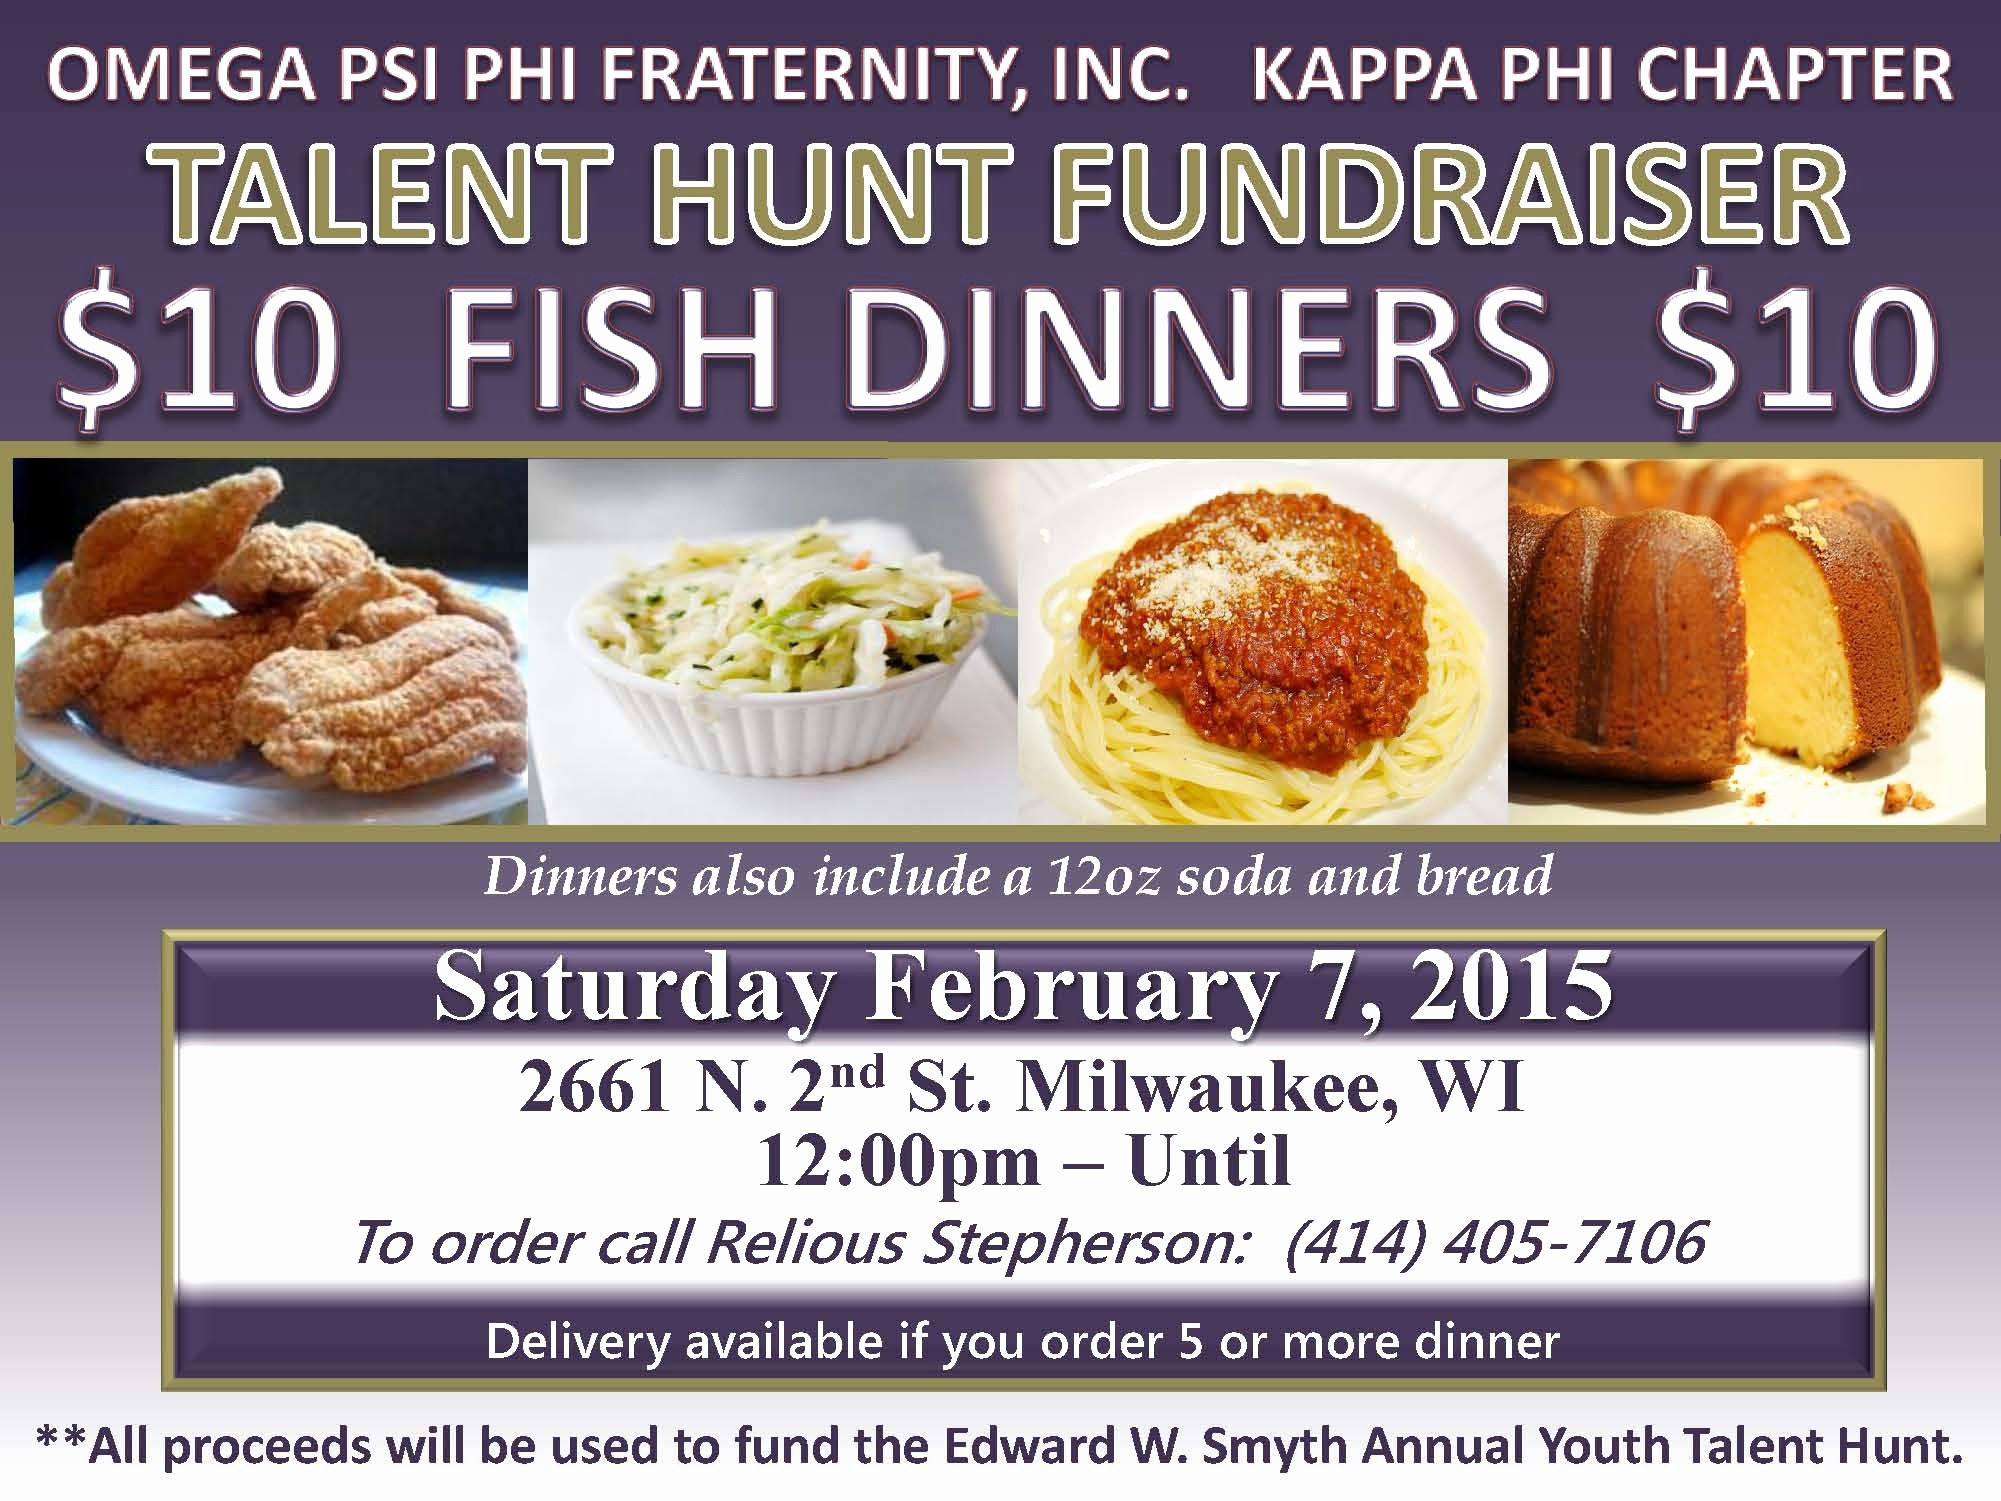 Fish Fry Fundraiser Flyer Fresh Fish Fry Fundraiser Flyer Template